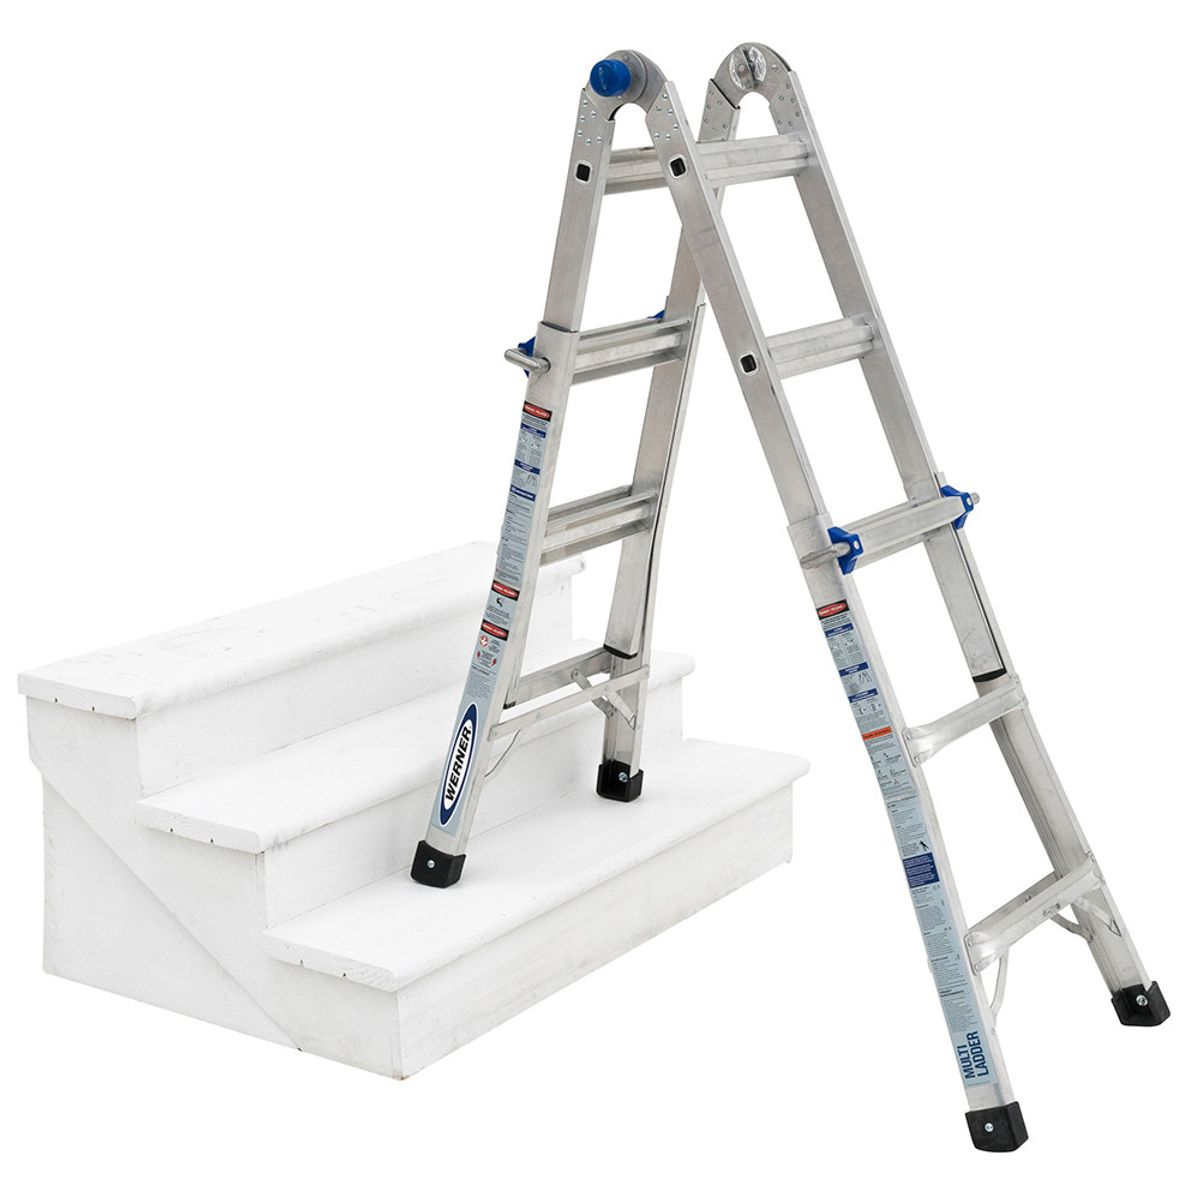 Mt 13 Multi Purpose Ladders Werner Us